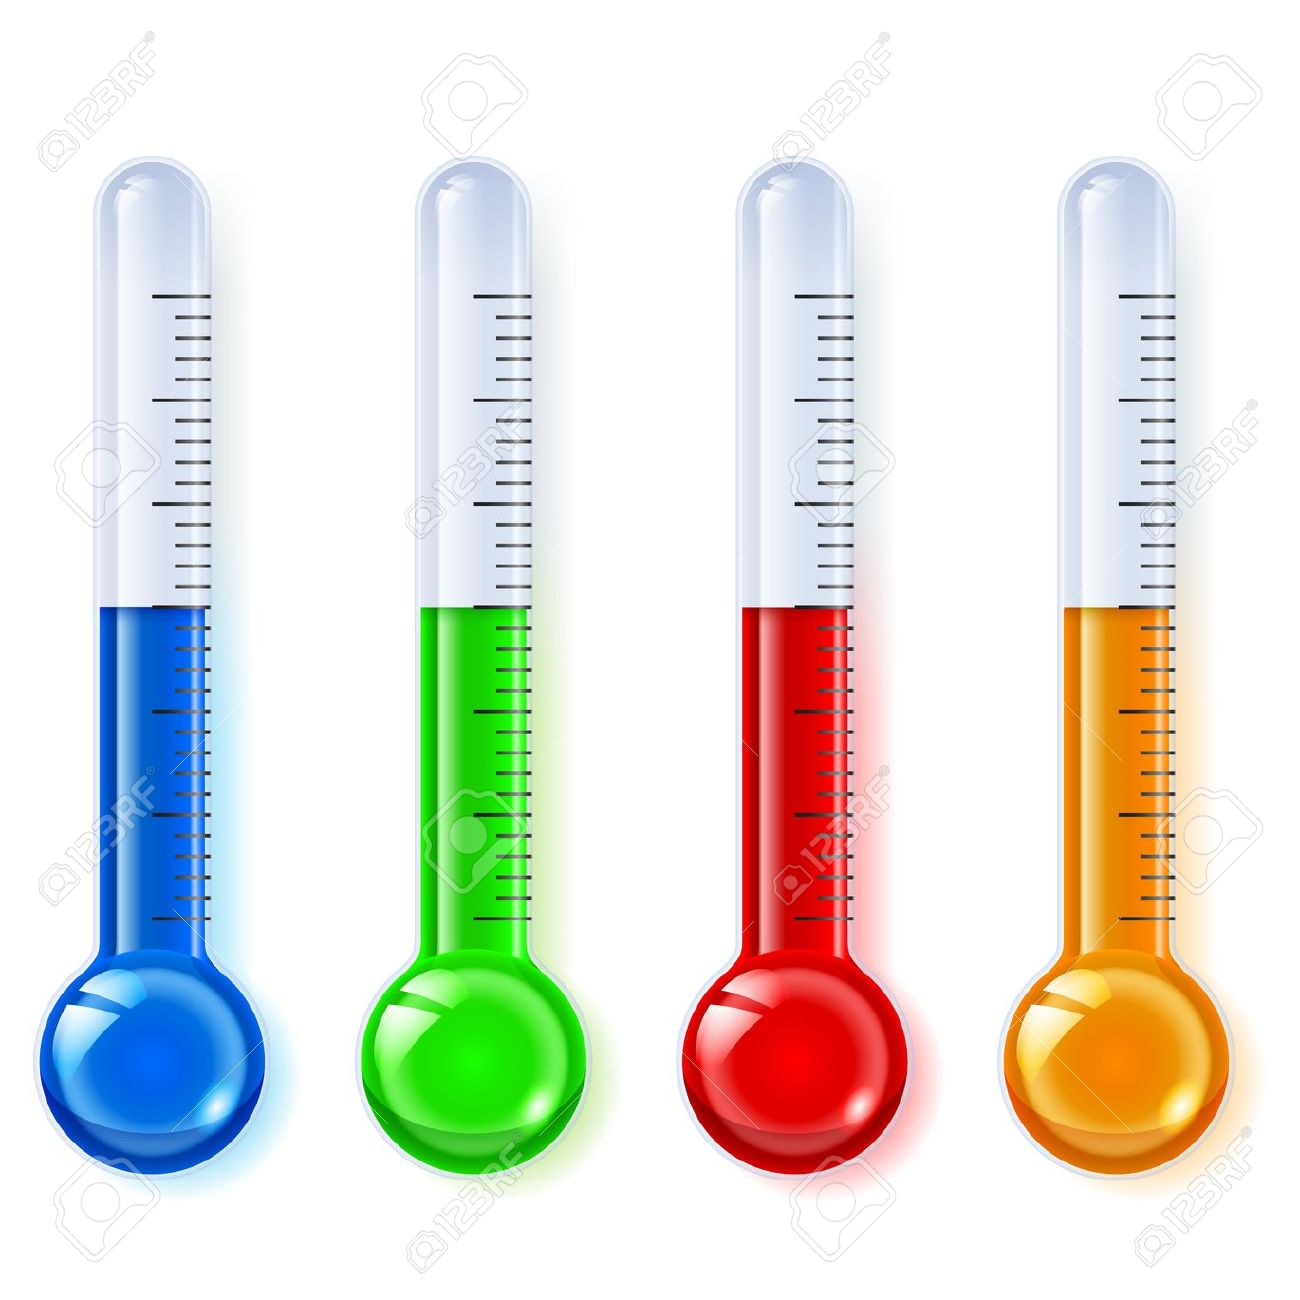 4,246 Temperature Indicator Stock Vector Illustration And Royalty.